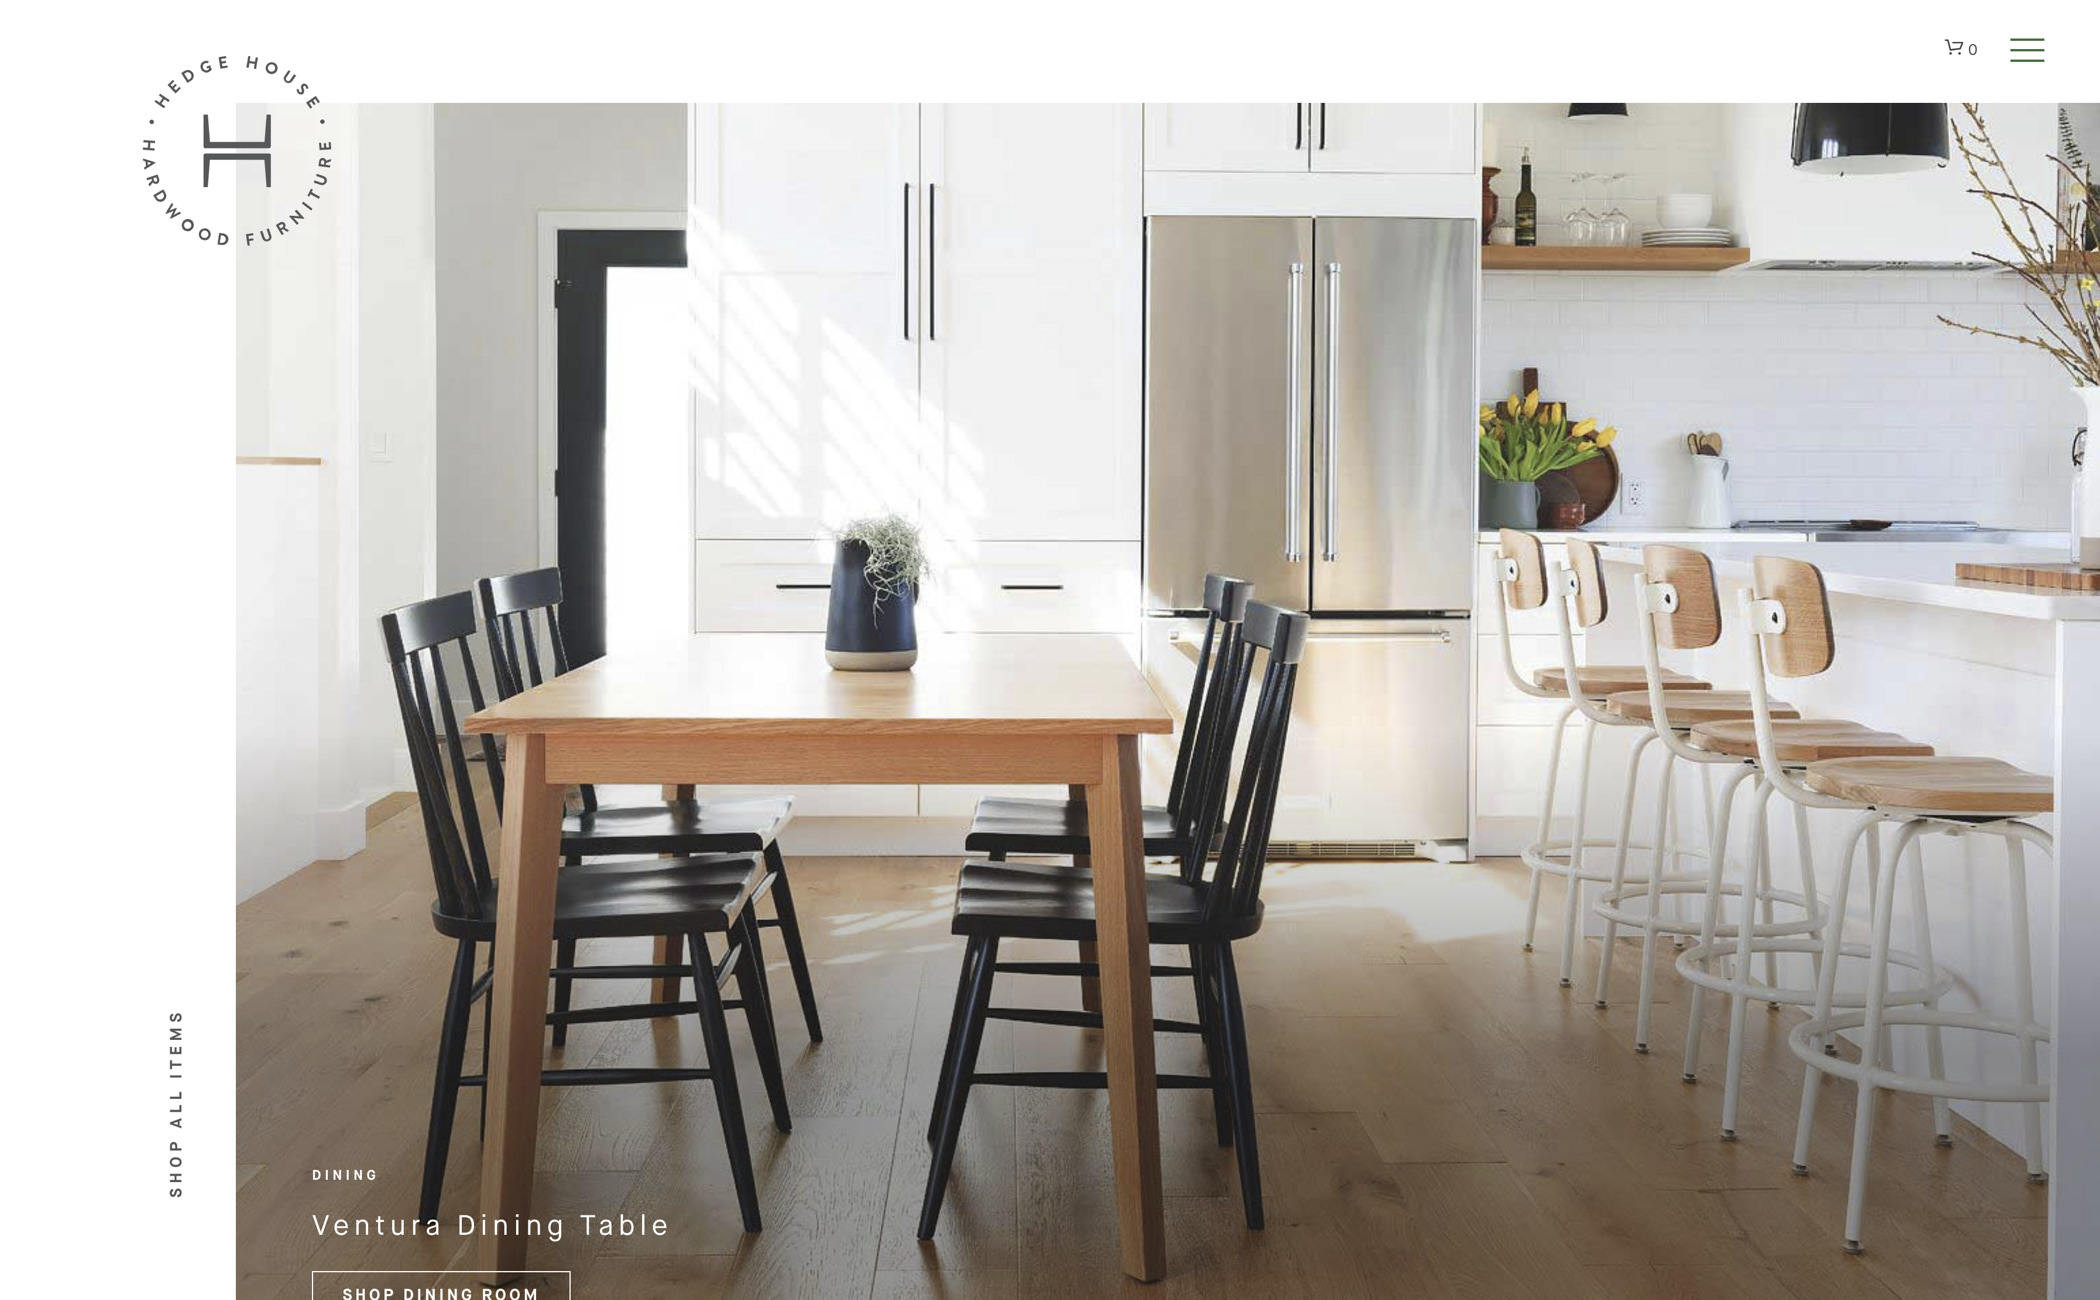 how to use a hardwood floor edger of the best designs web design inspiration wood designs within wood web design